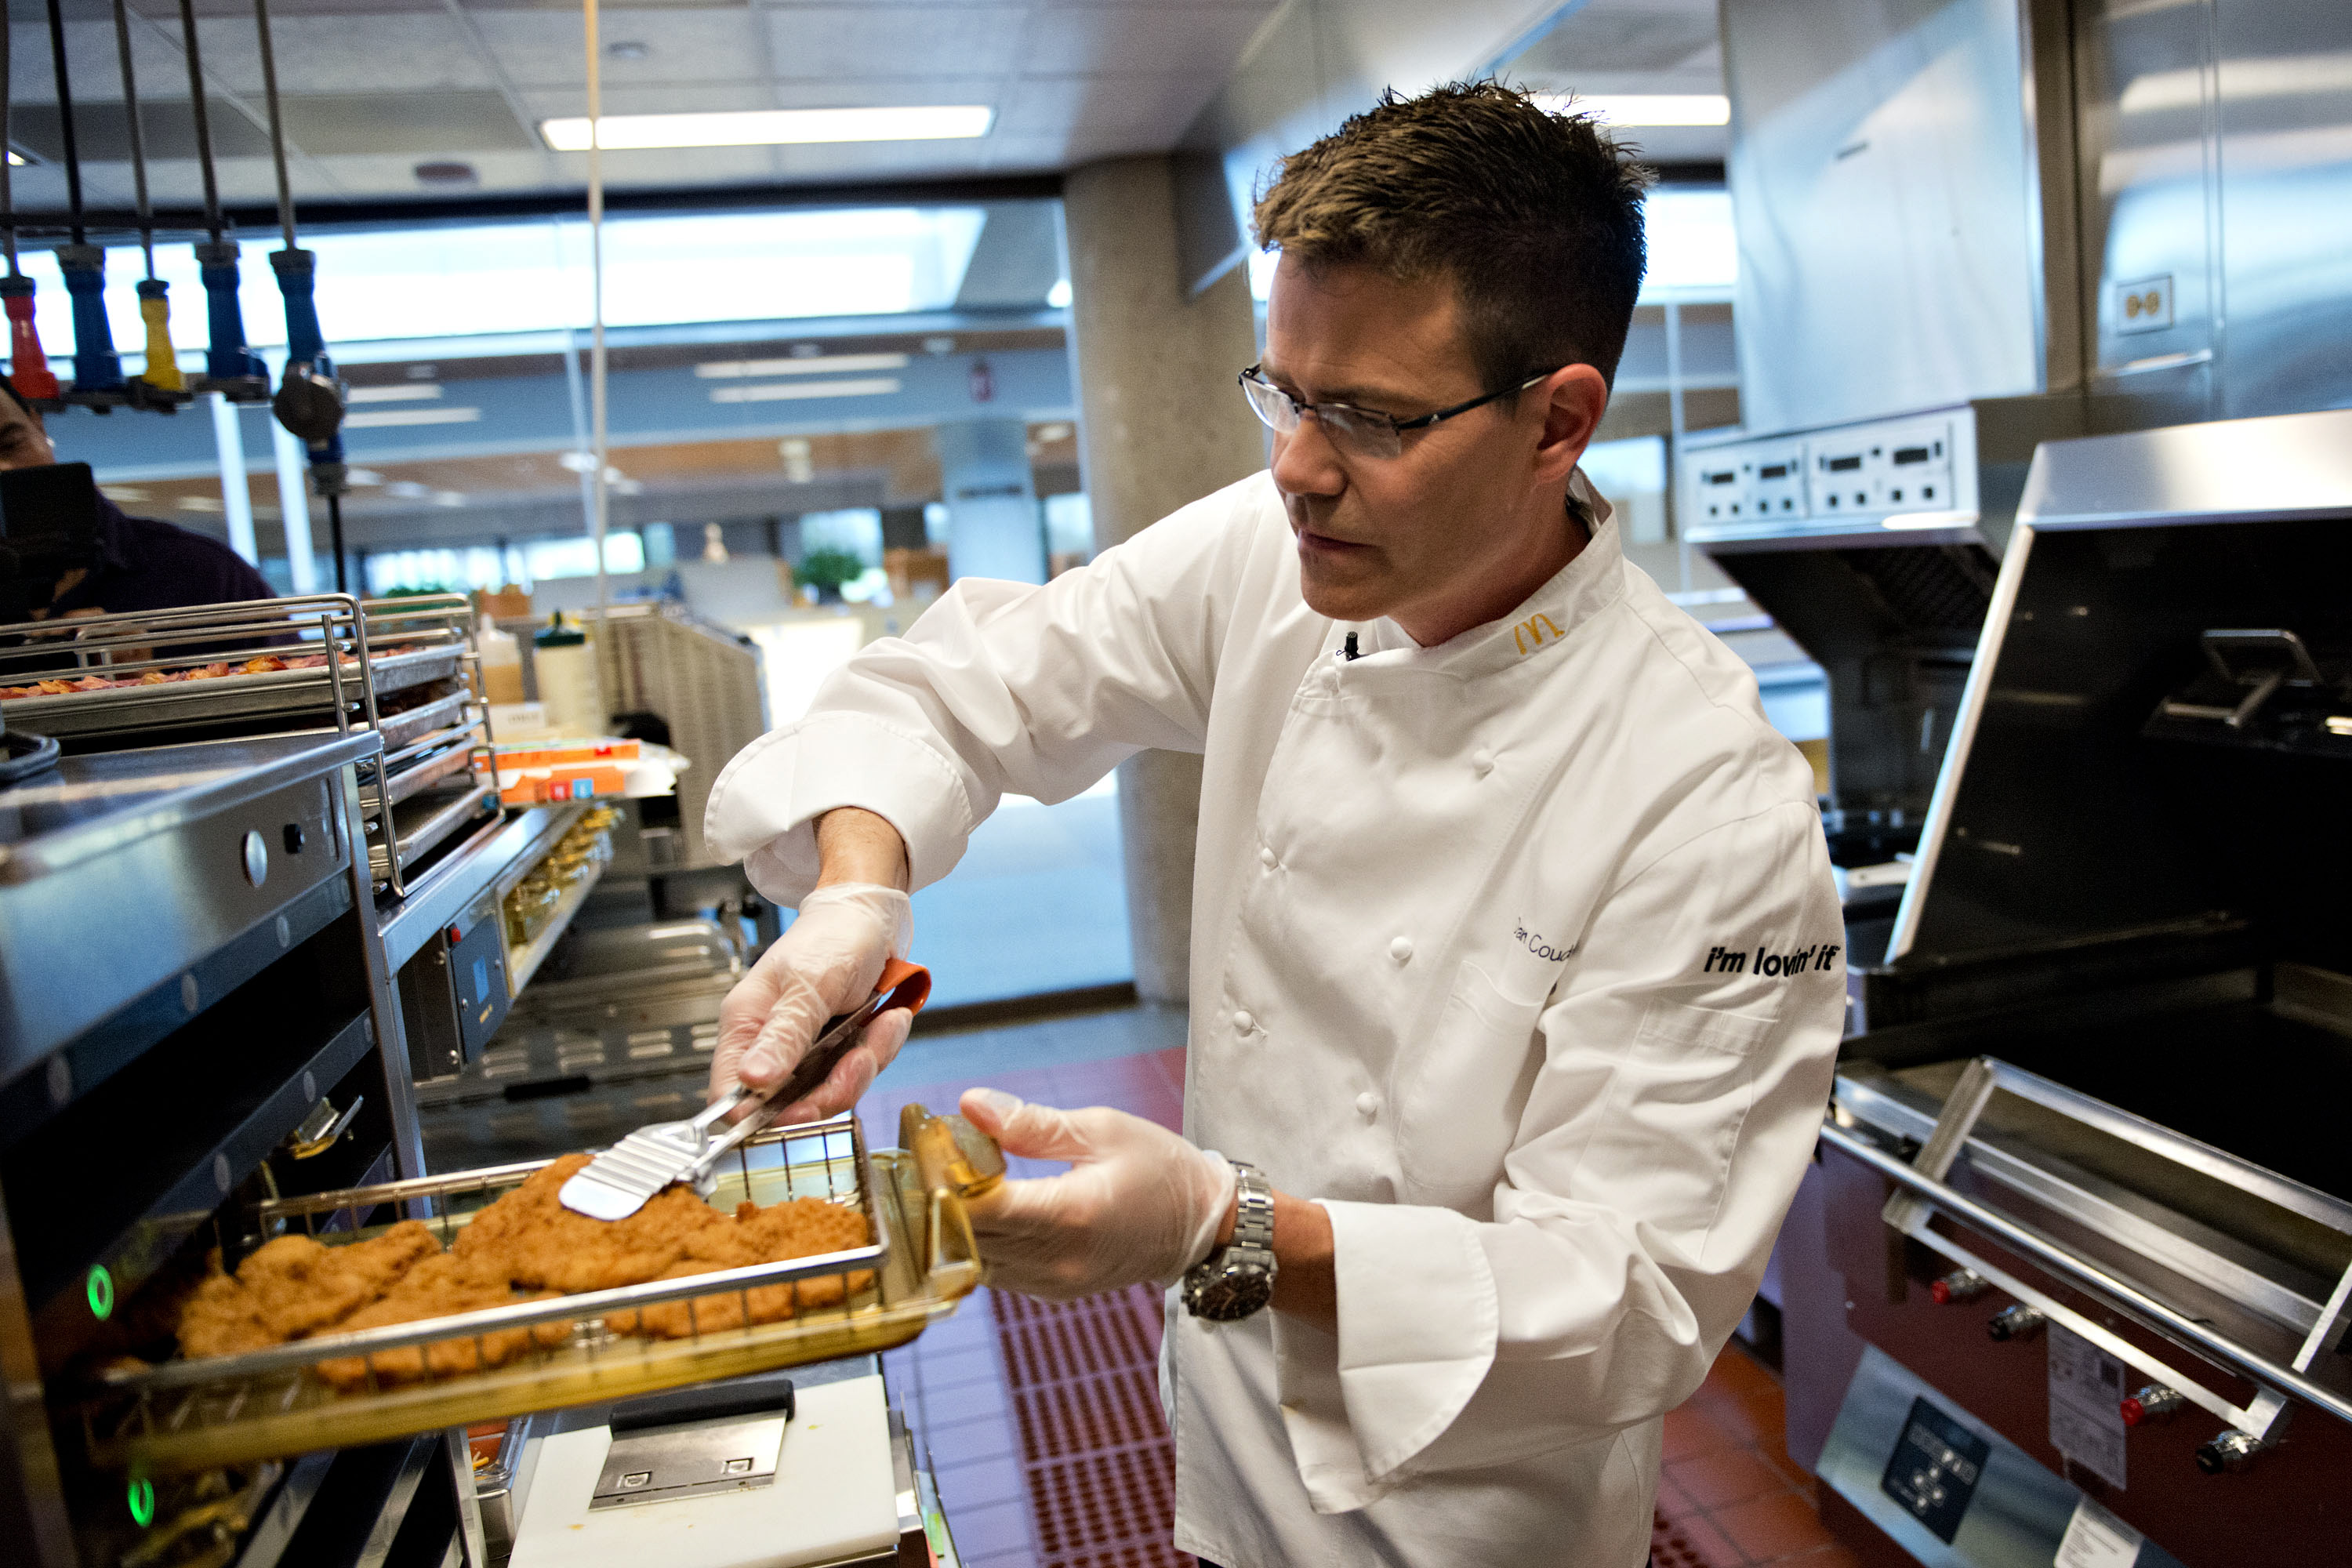 Portraits of McDonald's Corp. Executive Chef And Vice President of Culinary Innovation Don Coudreaut